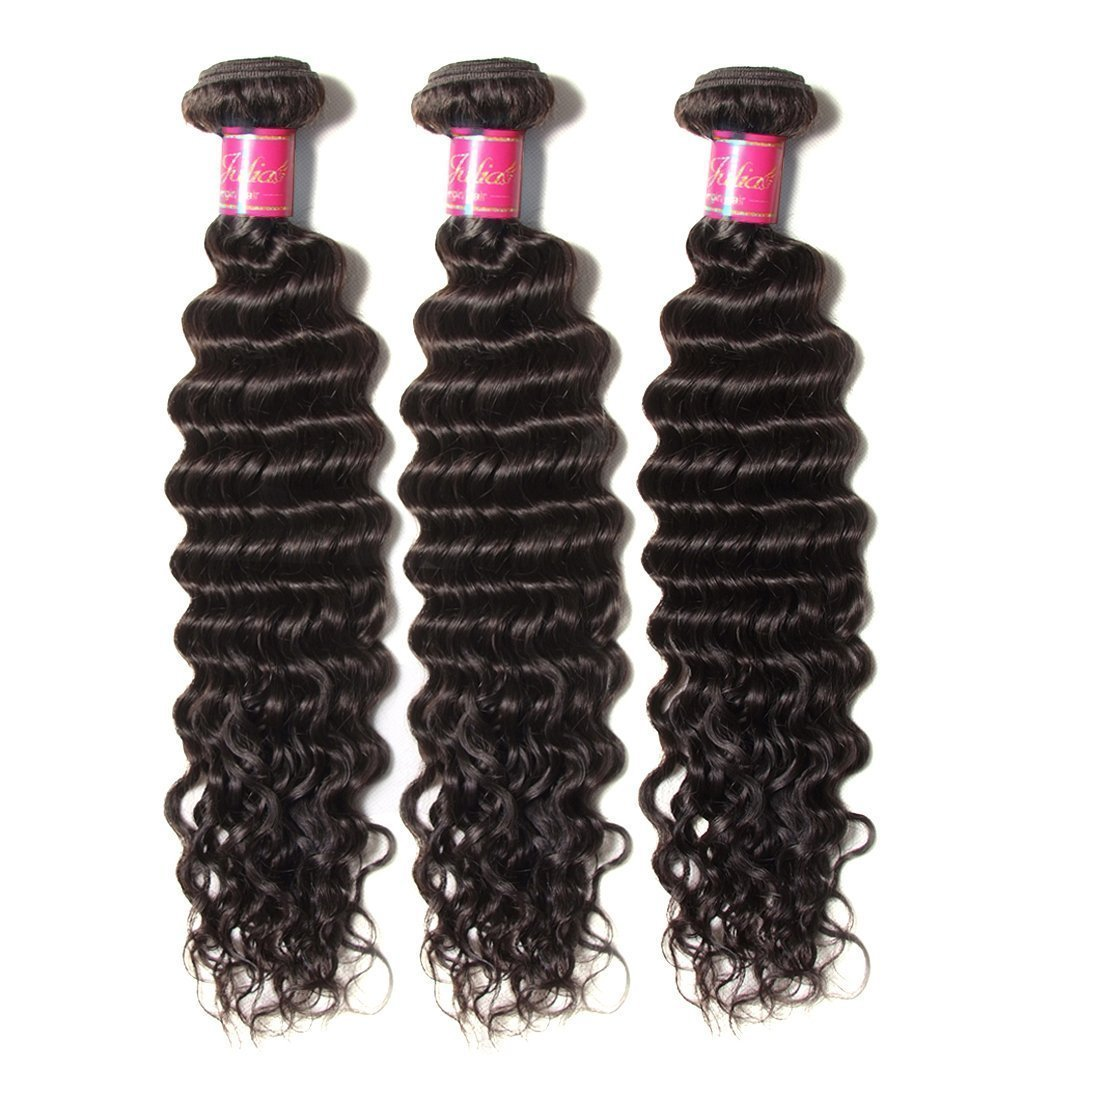 Ali Julia Hair Brazilian Virgin Deep Curly Wave Hair Bundles with Frontal Lace Closure 100% Unprocessed Human Hair Weave Extensions Natural Color (22 24 26+20 inch, Frontal with Bundles) by Yilian (Image #1)